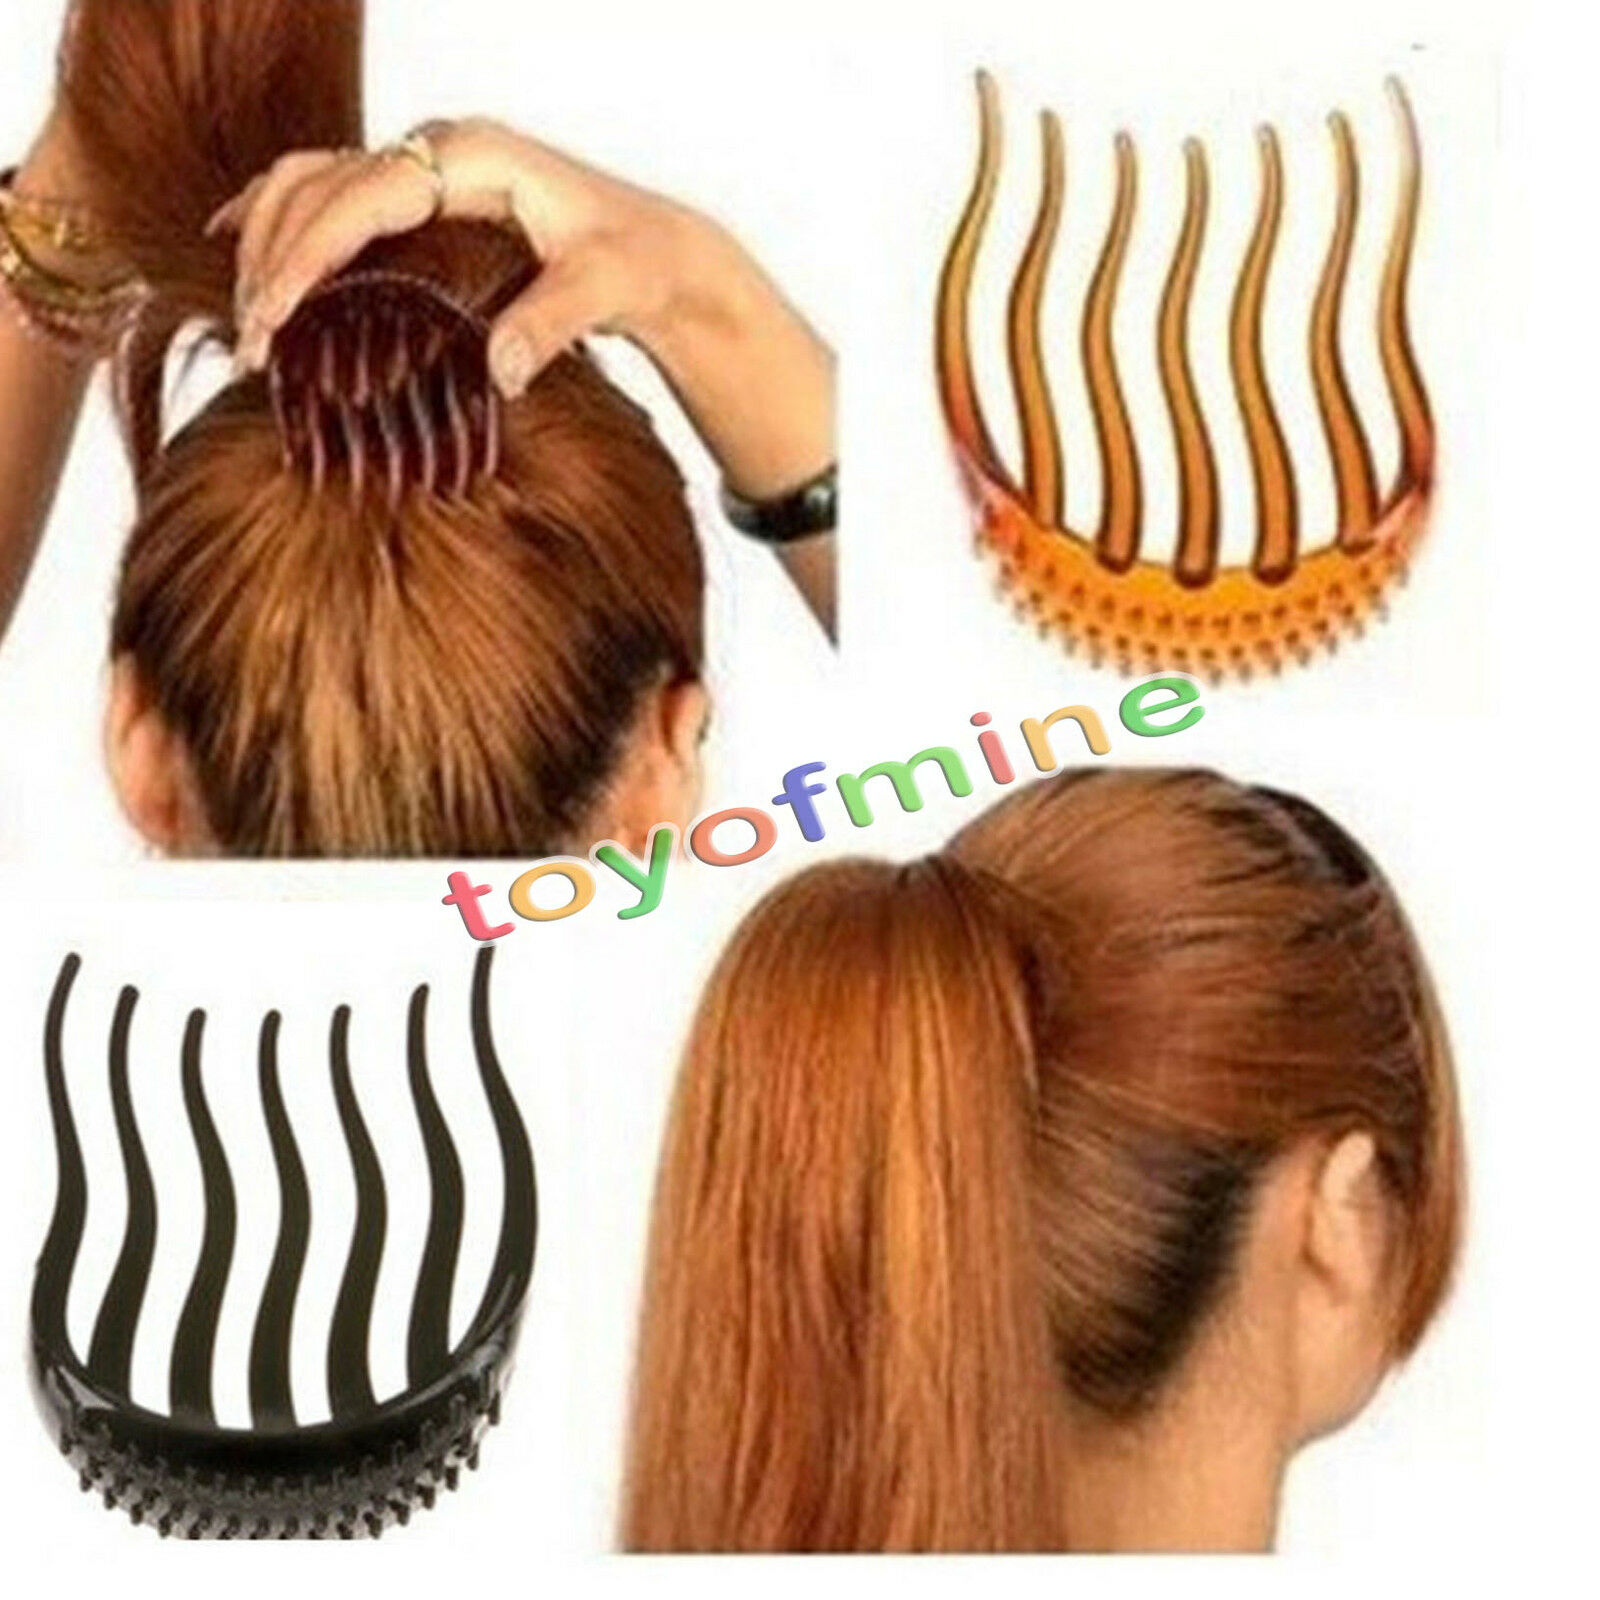 hair styling accessories online hair styling clip stick bun maker braid device 3923 | s l1600